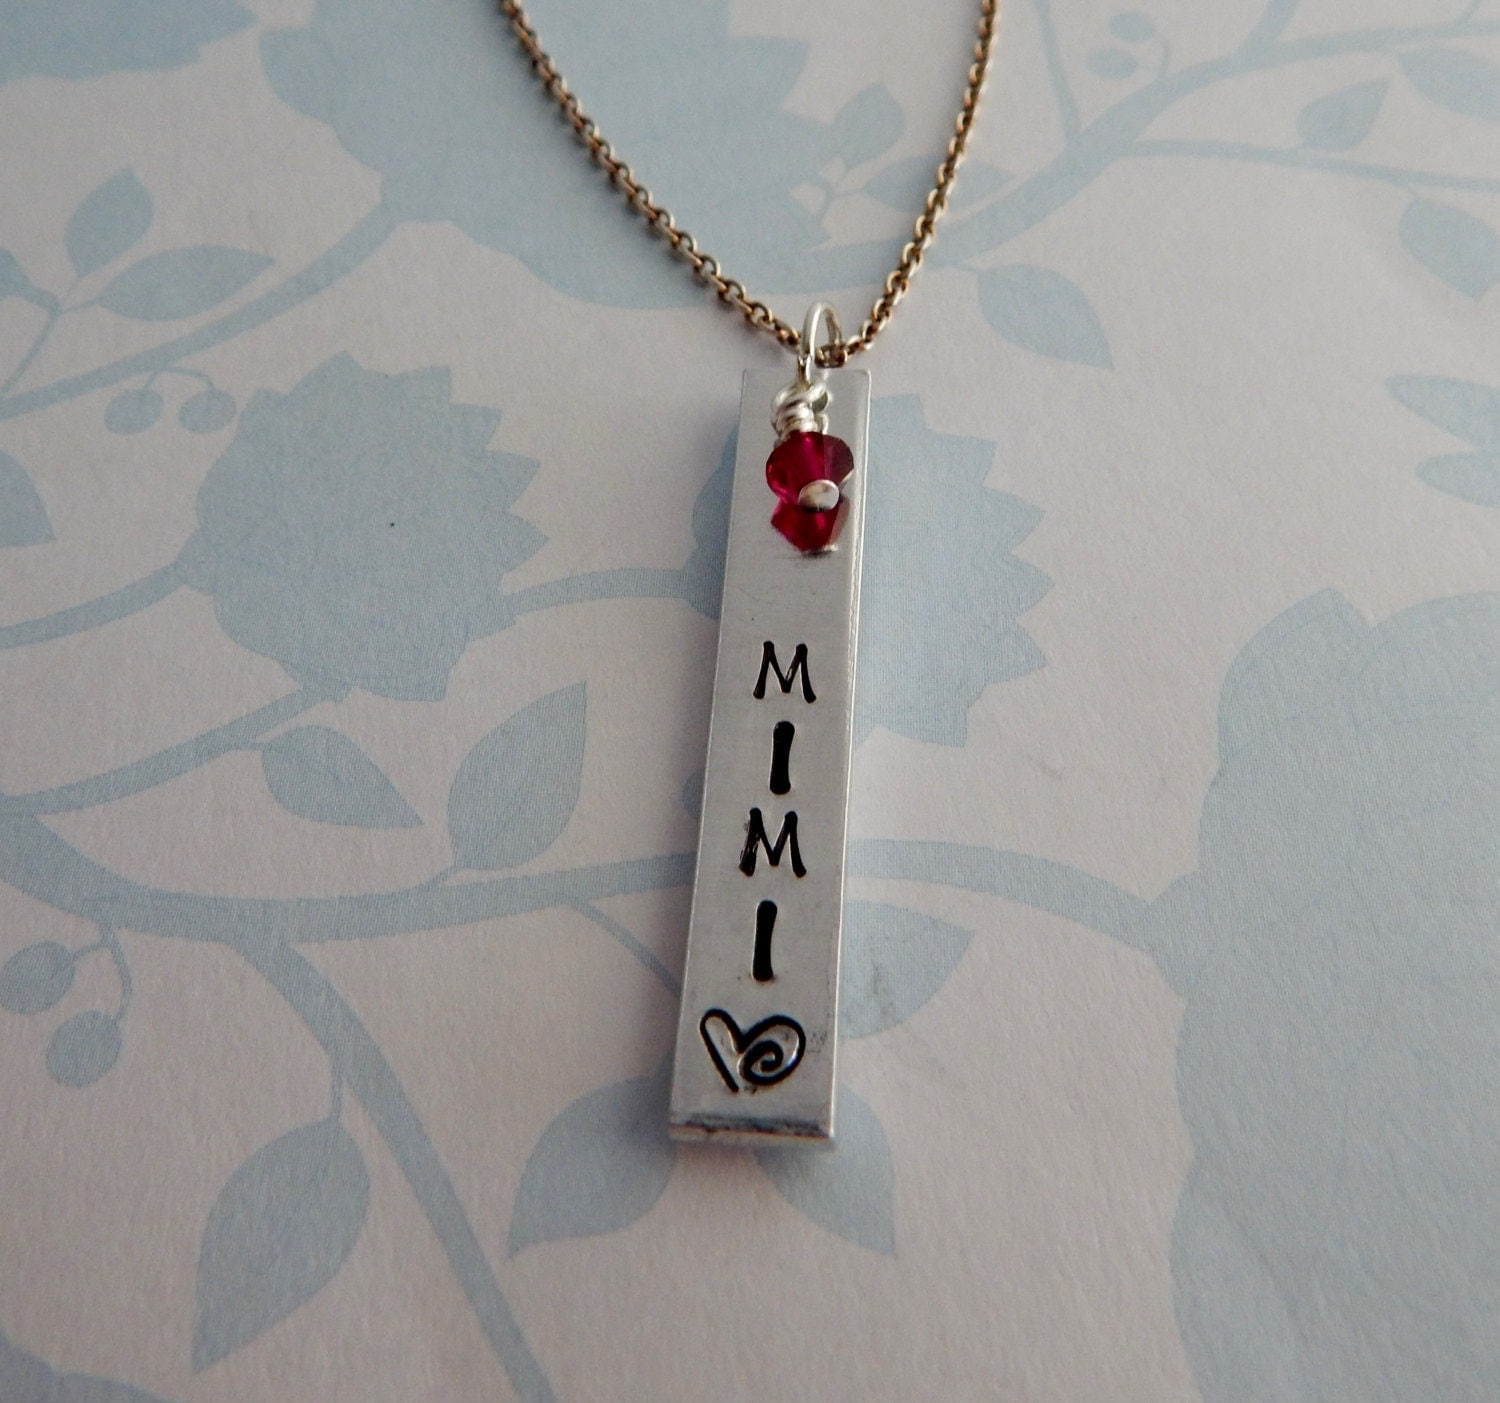 mimi necklace custom sted bar necklace with